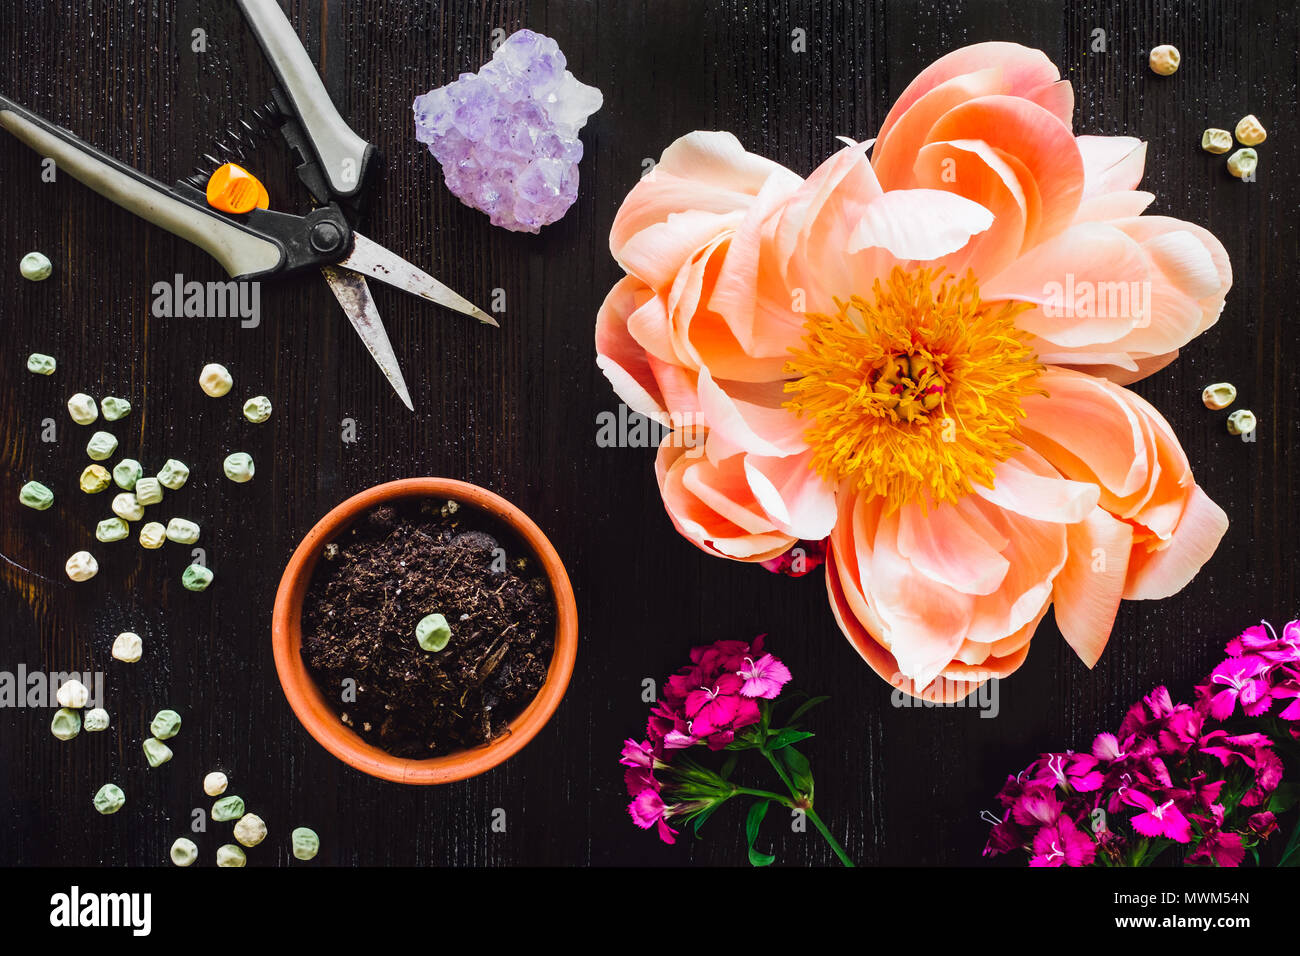 Gardening Accessories with Flowers, Seeds, Scissors and Amethyst - Stock Image